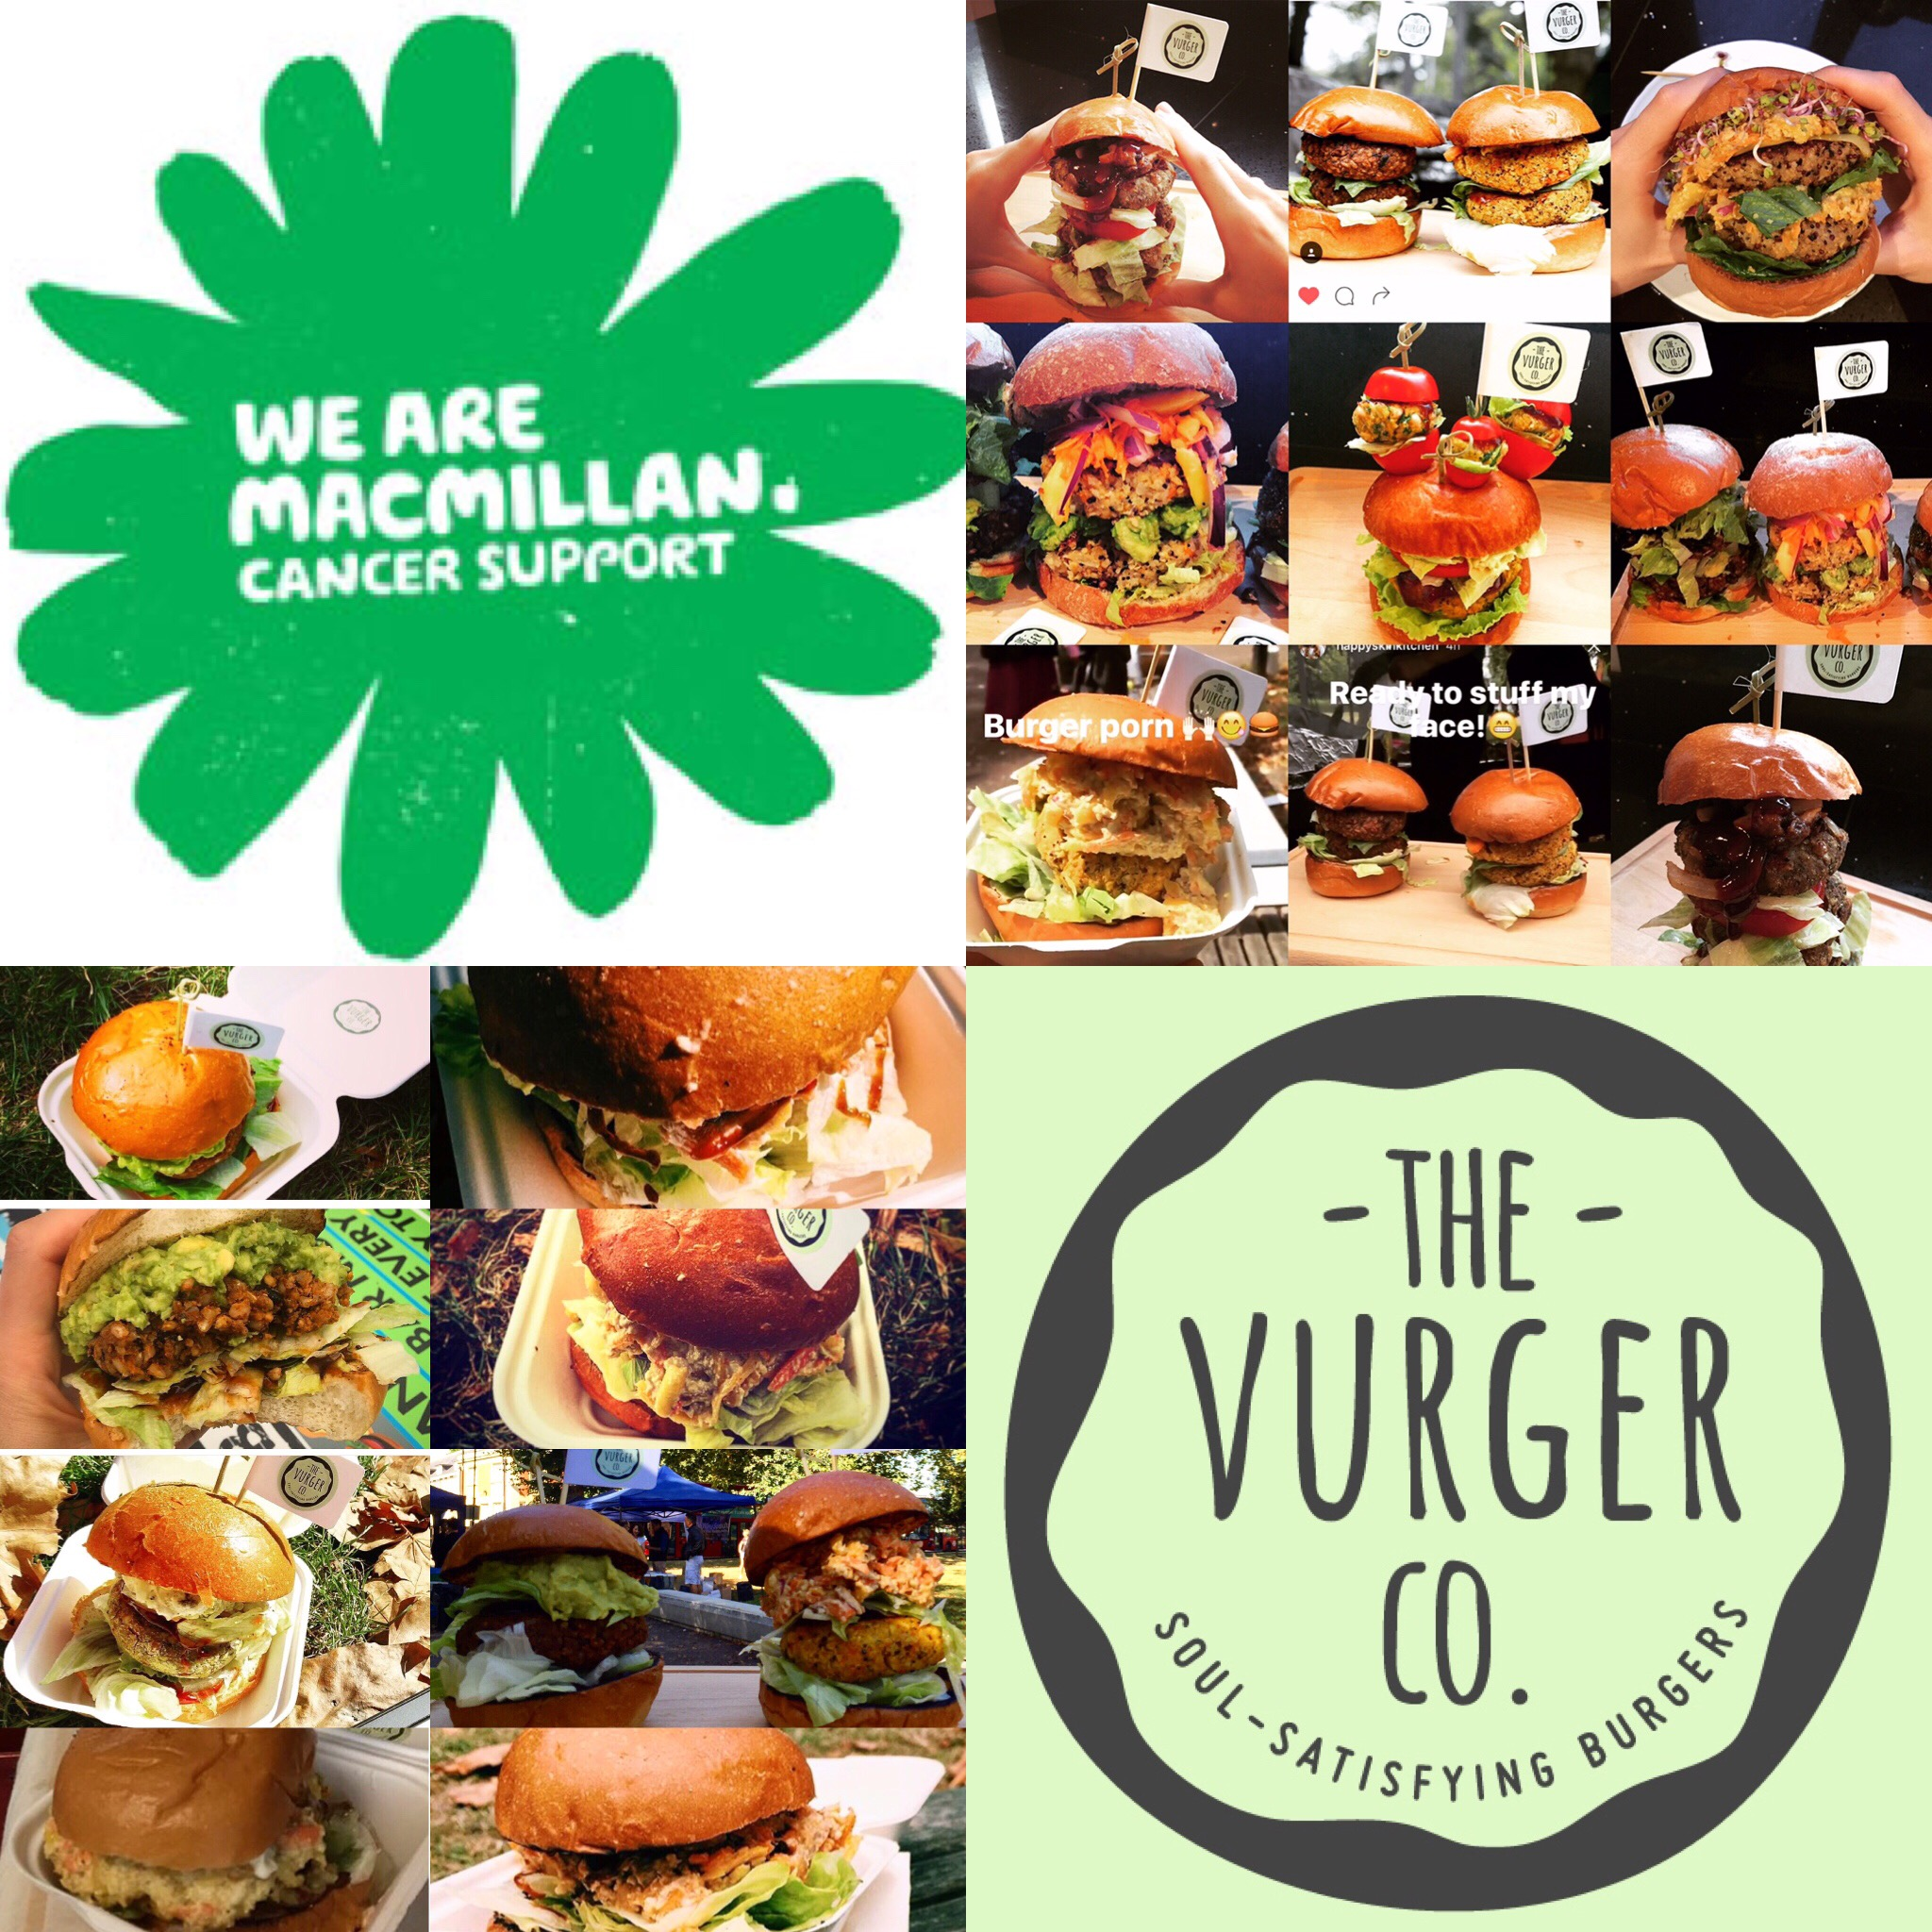 Come and help us support Macmillan in the only way we know how! A Vurger feast!